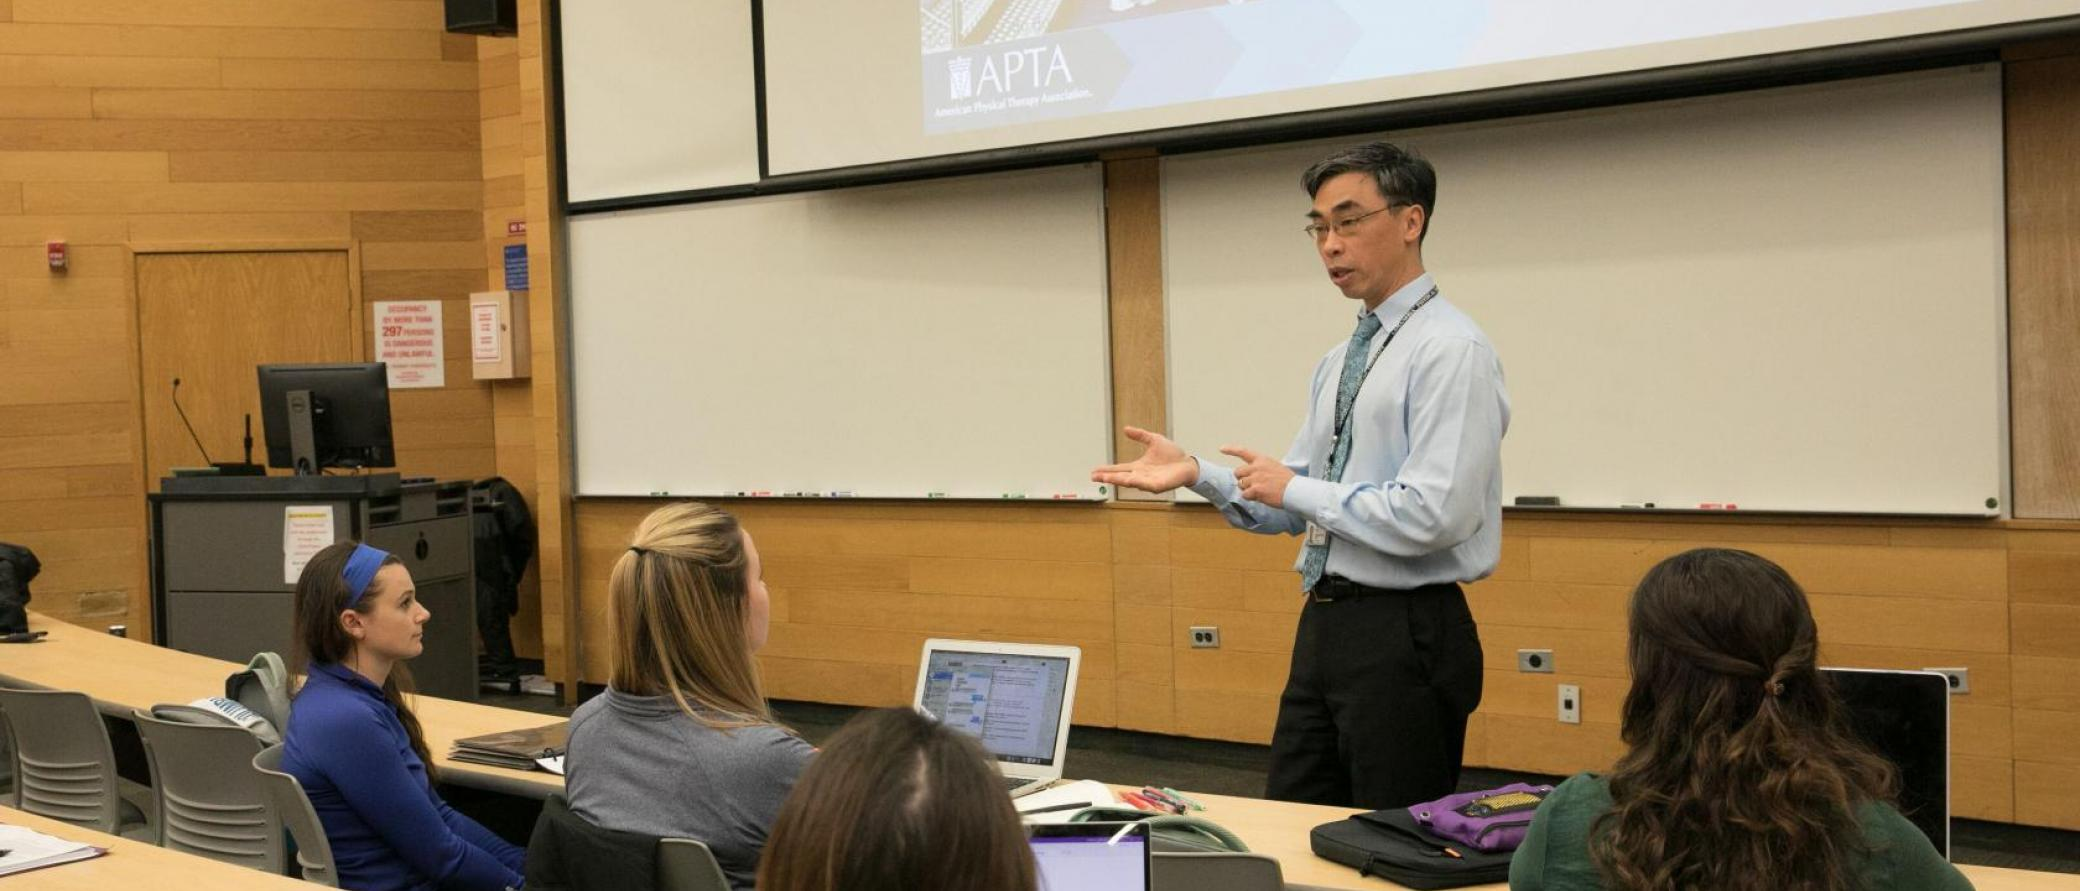 Dr. Kevin Wong lecturing to students